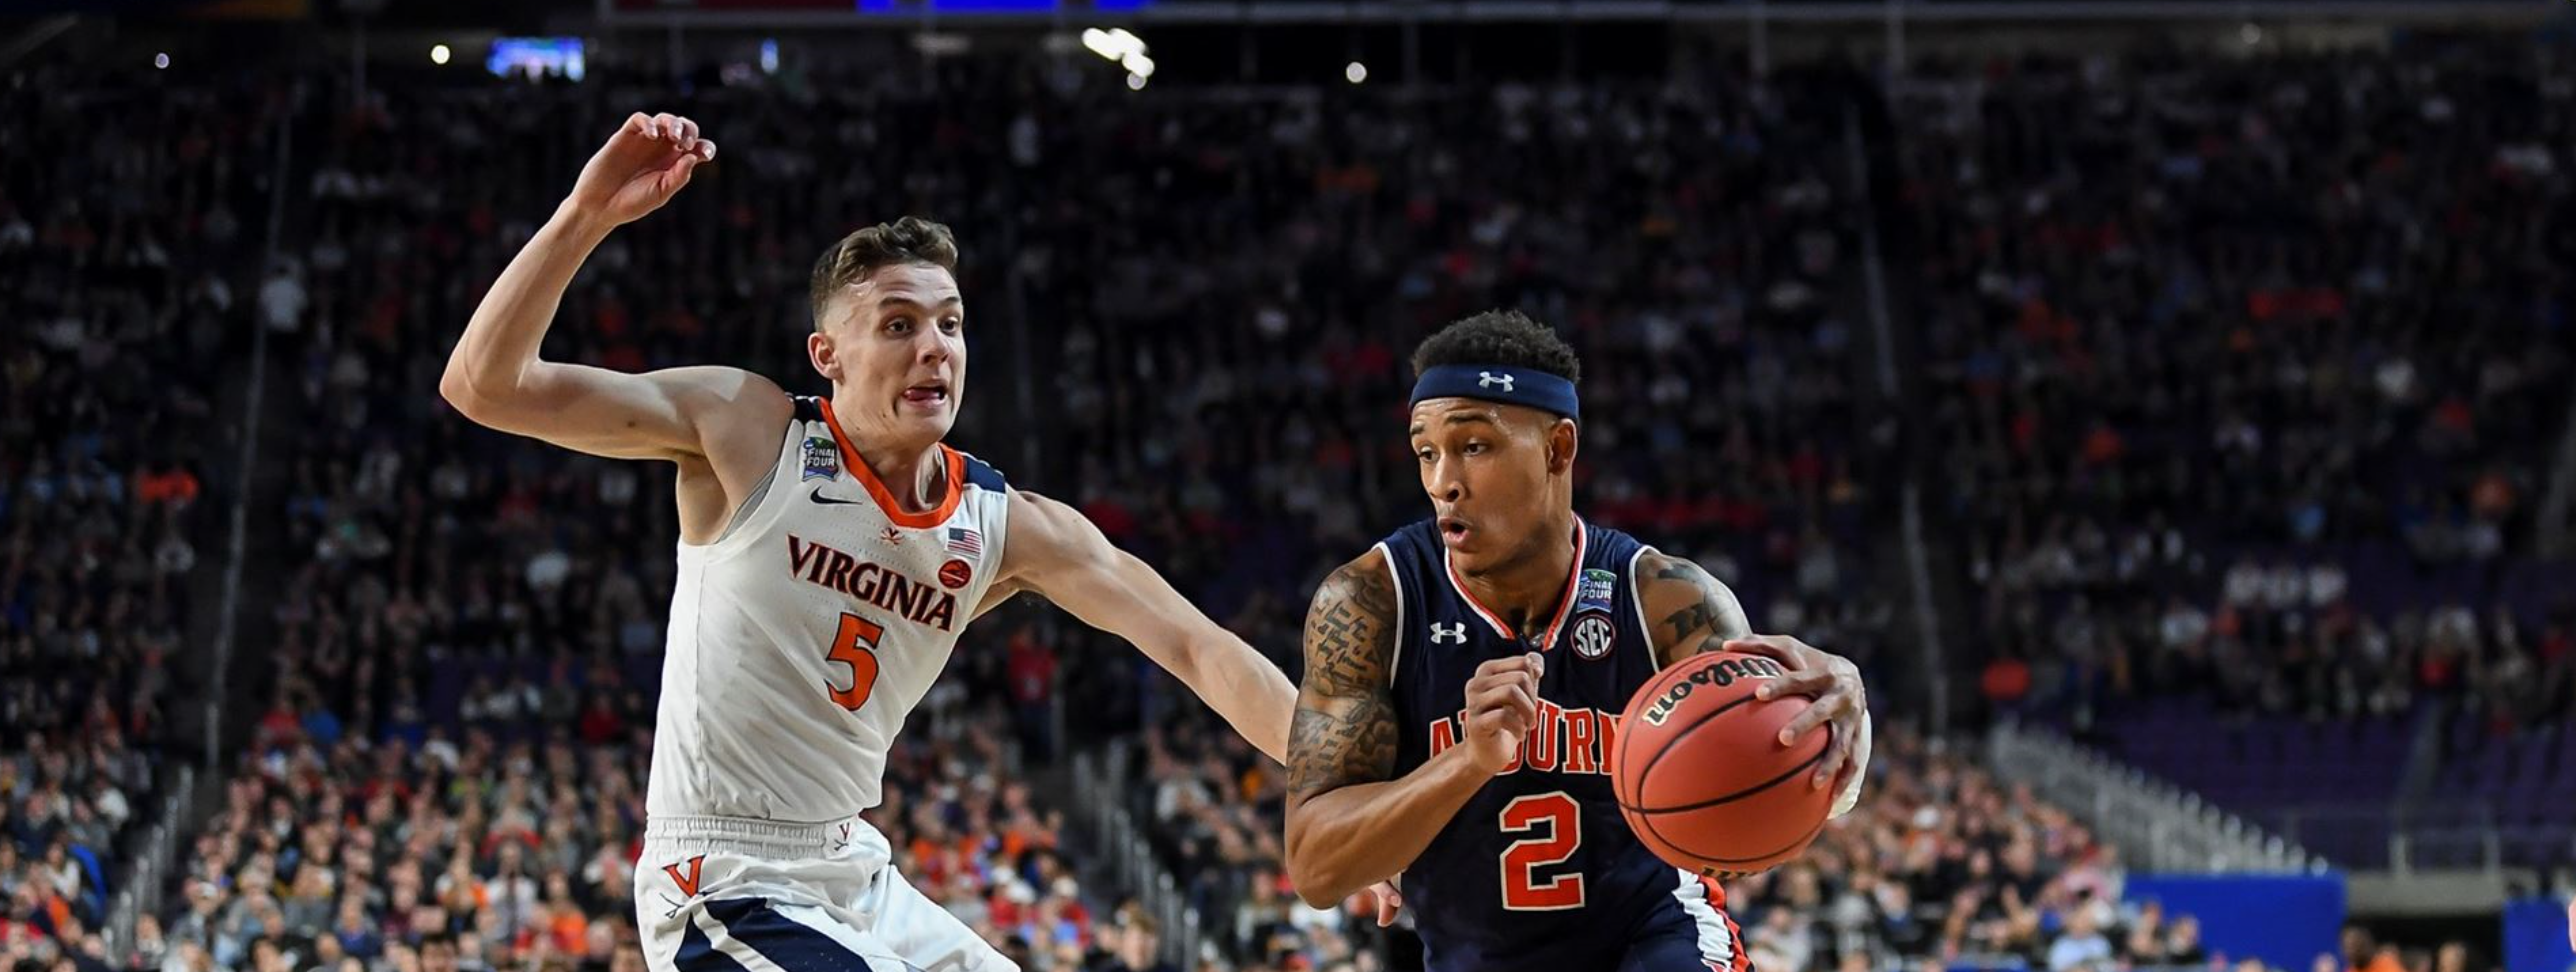 Heartbreak: Auburn loses by 1 point with .6 seconds left in game